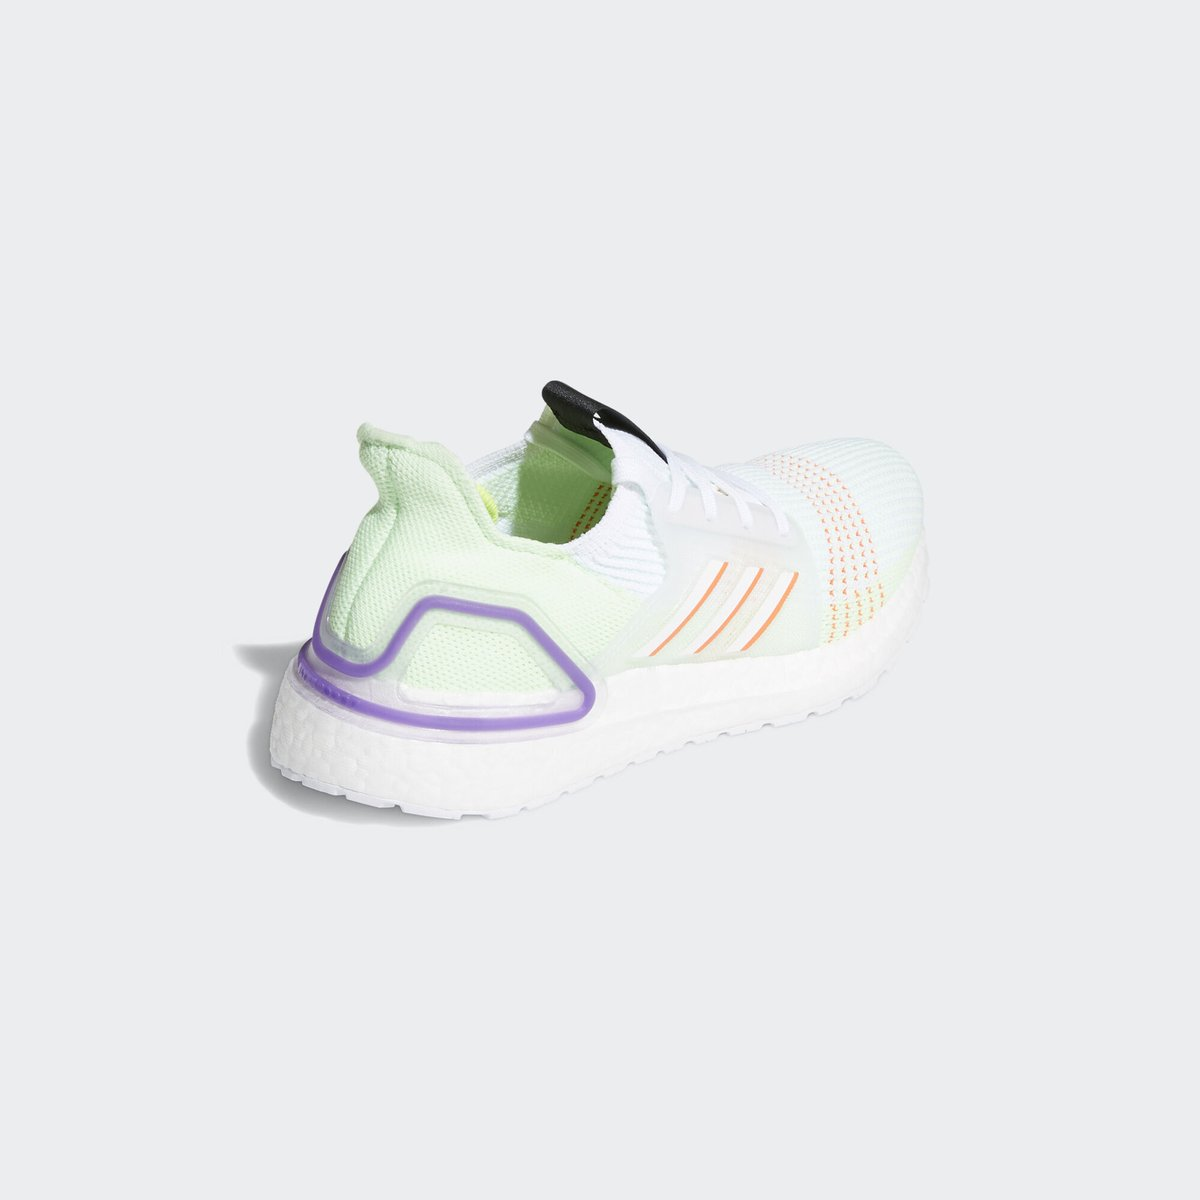 ADIDAS ULTRA BOOST 19 FTWR WHITE:SOLAR RED:SOLAR YELLOW 3